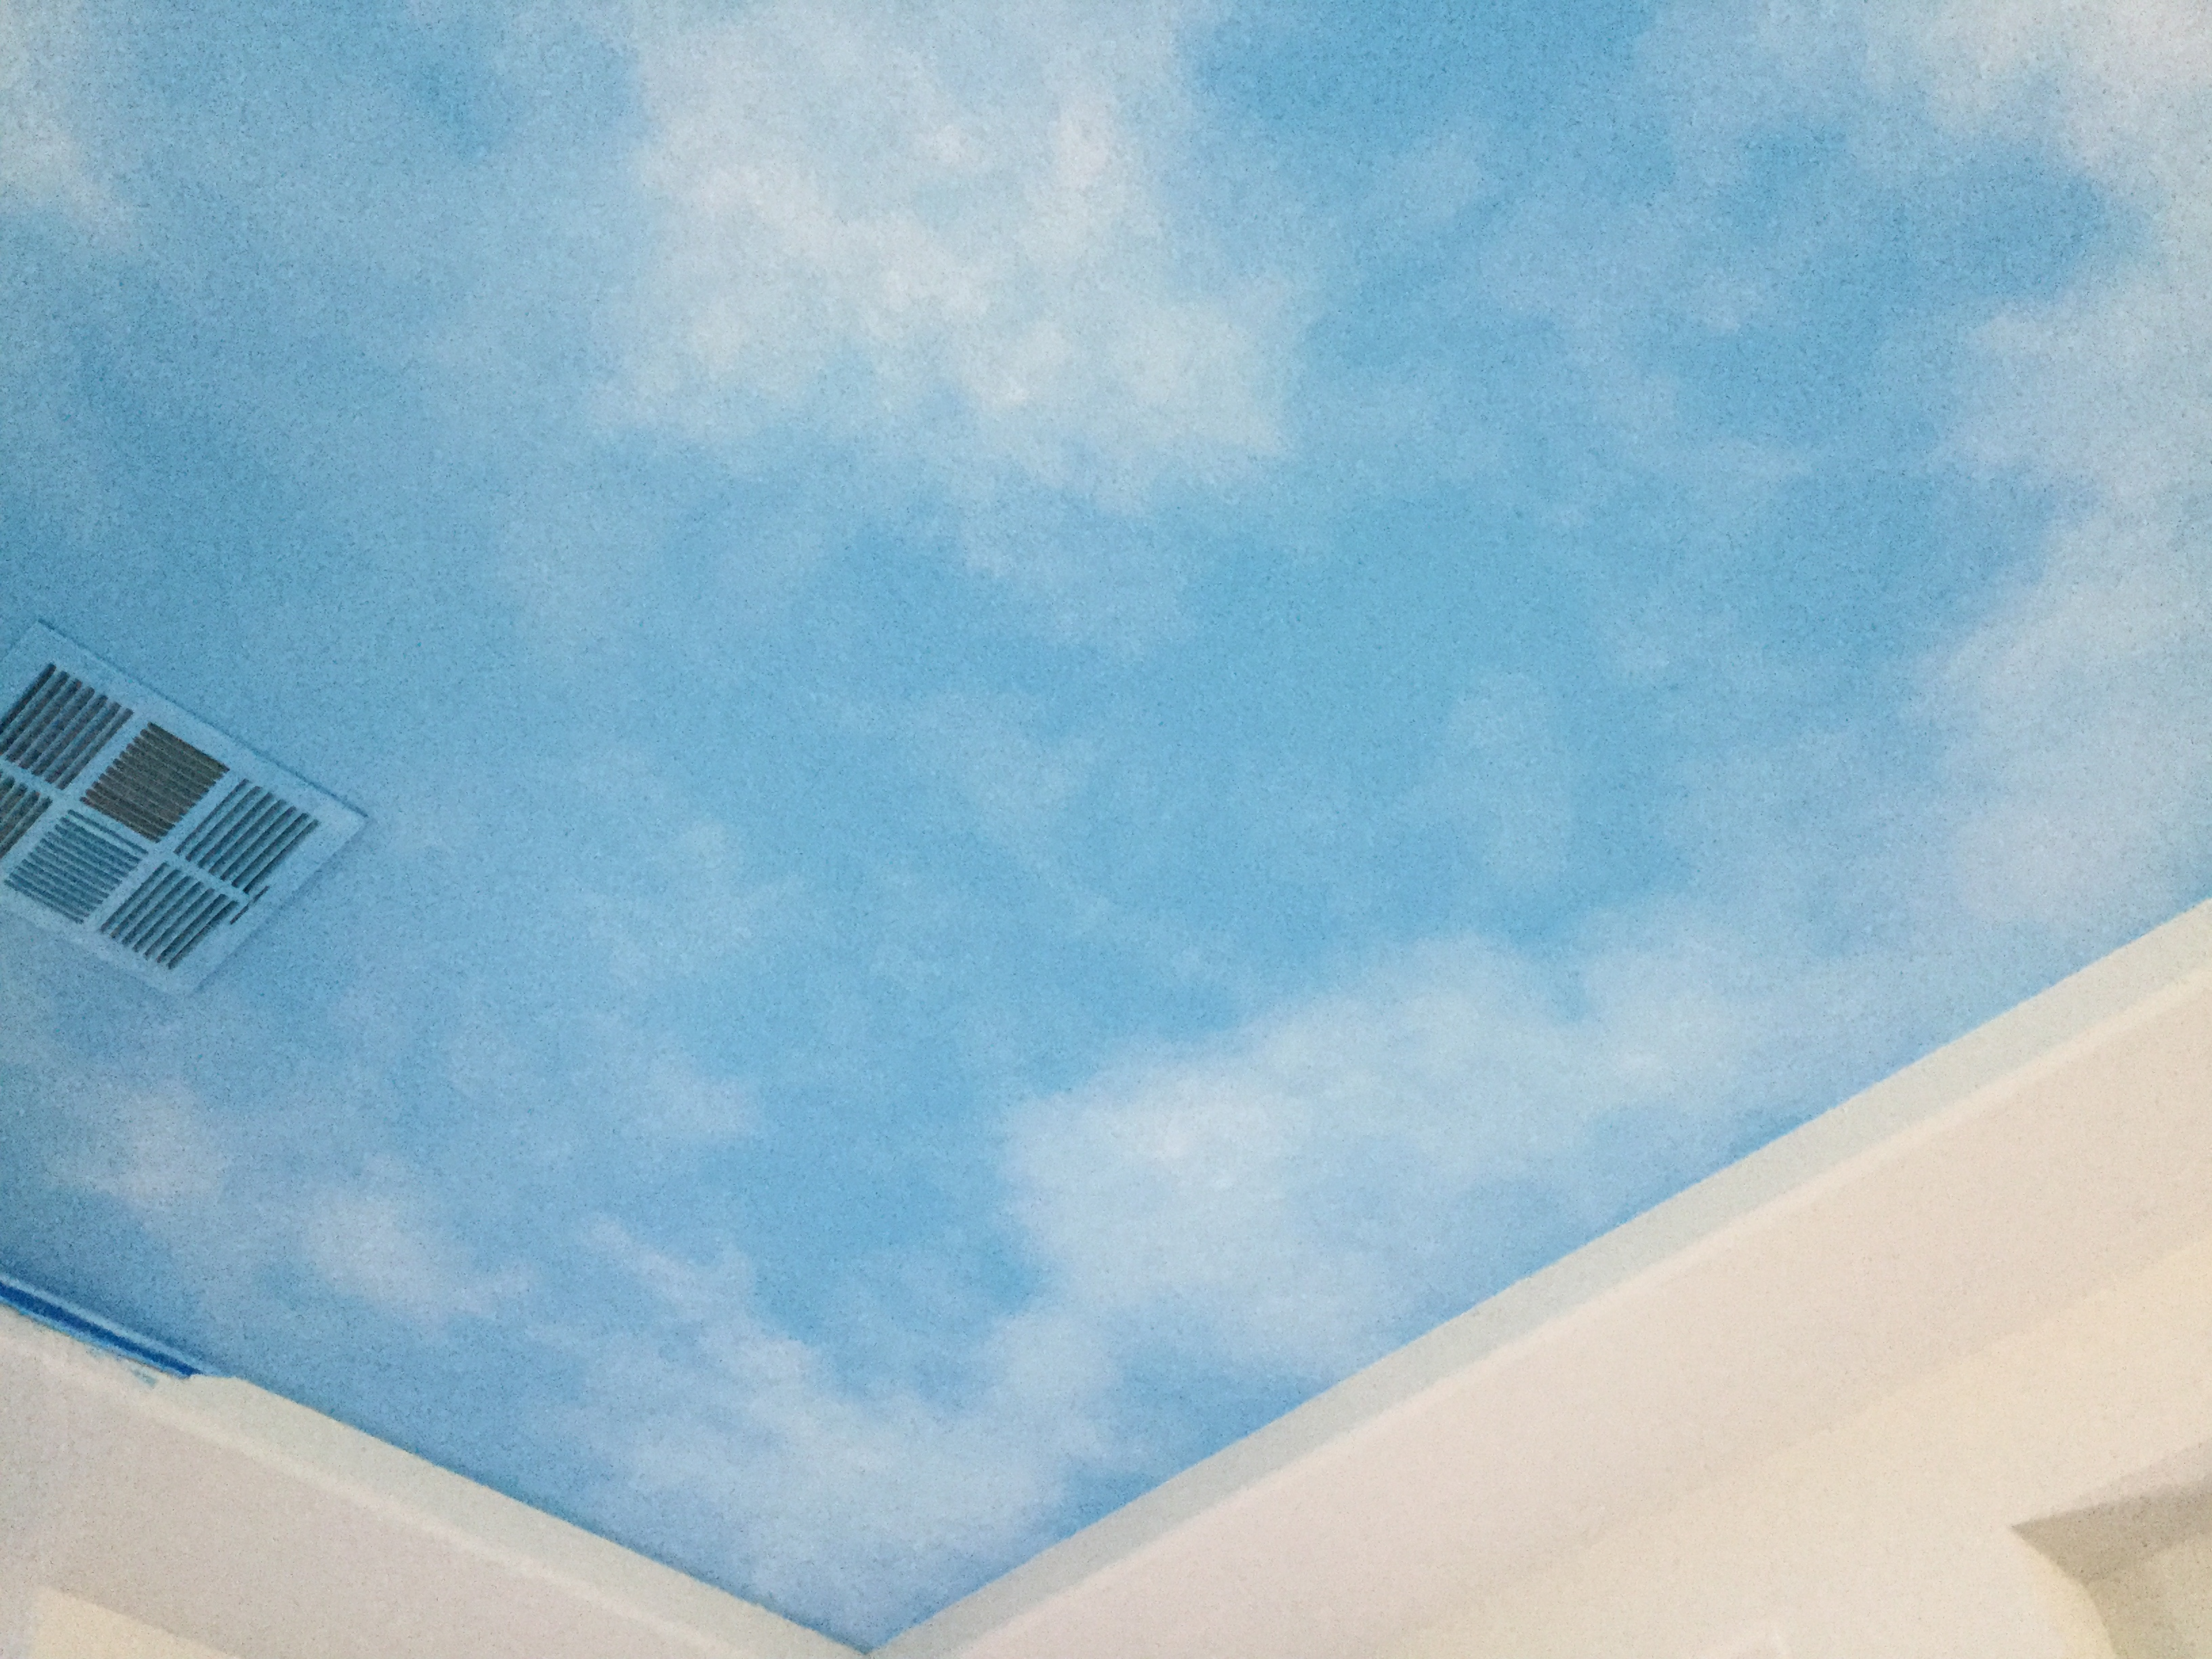 Cloudy Ceiling Art